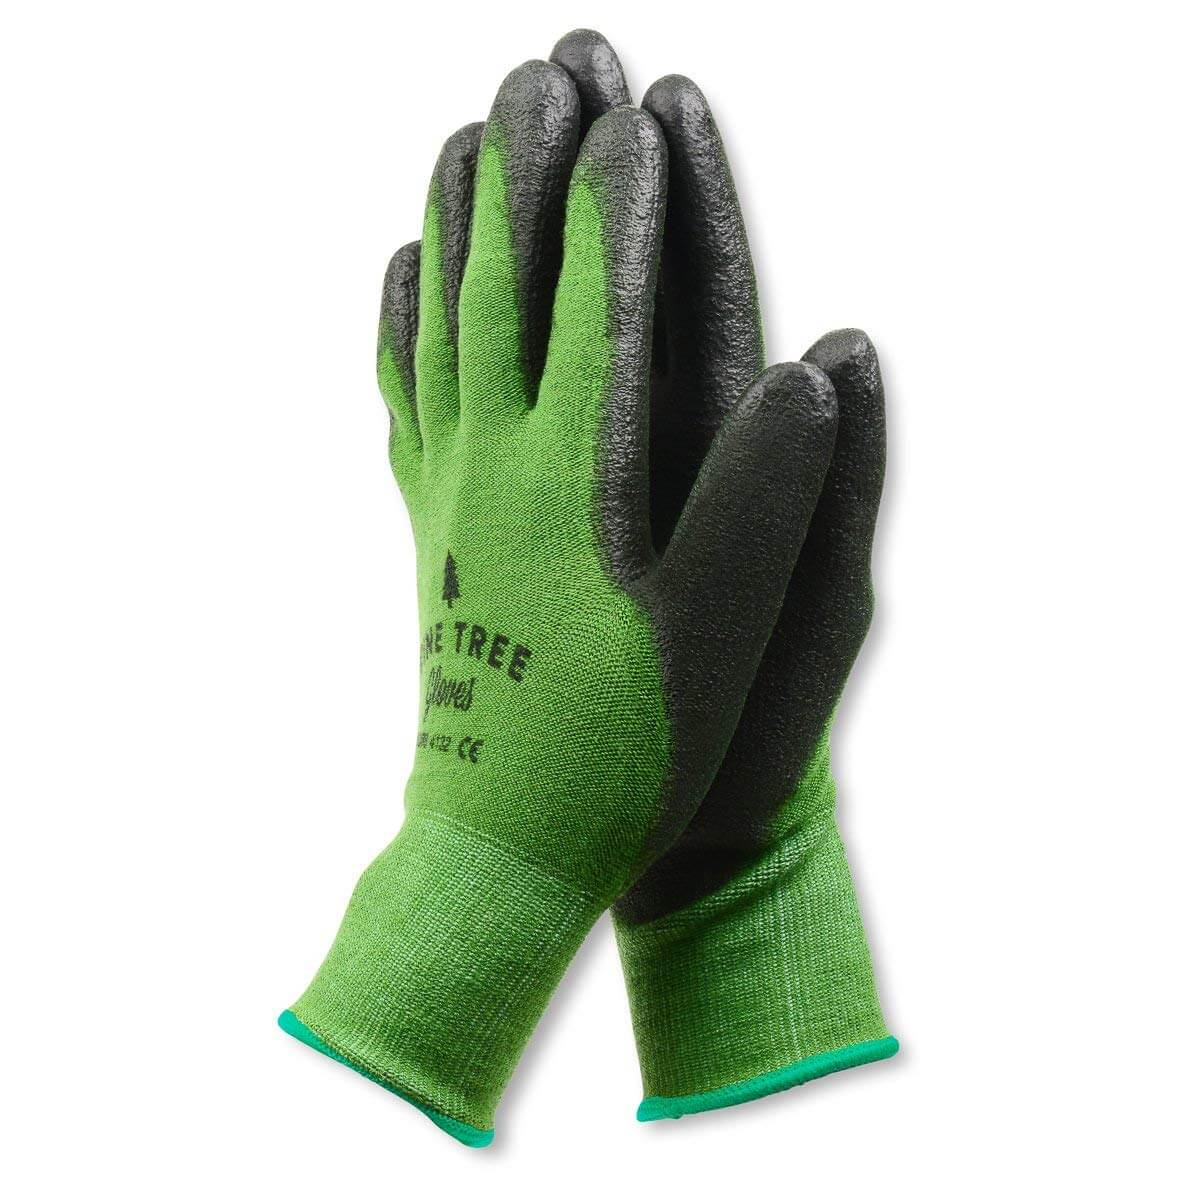 And of course, gloves!